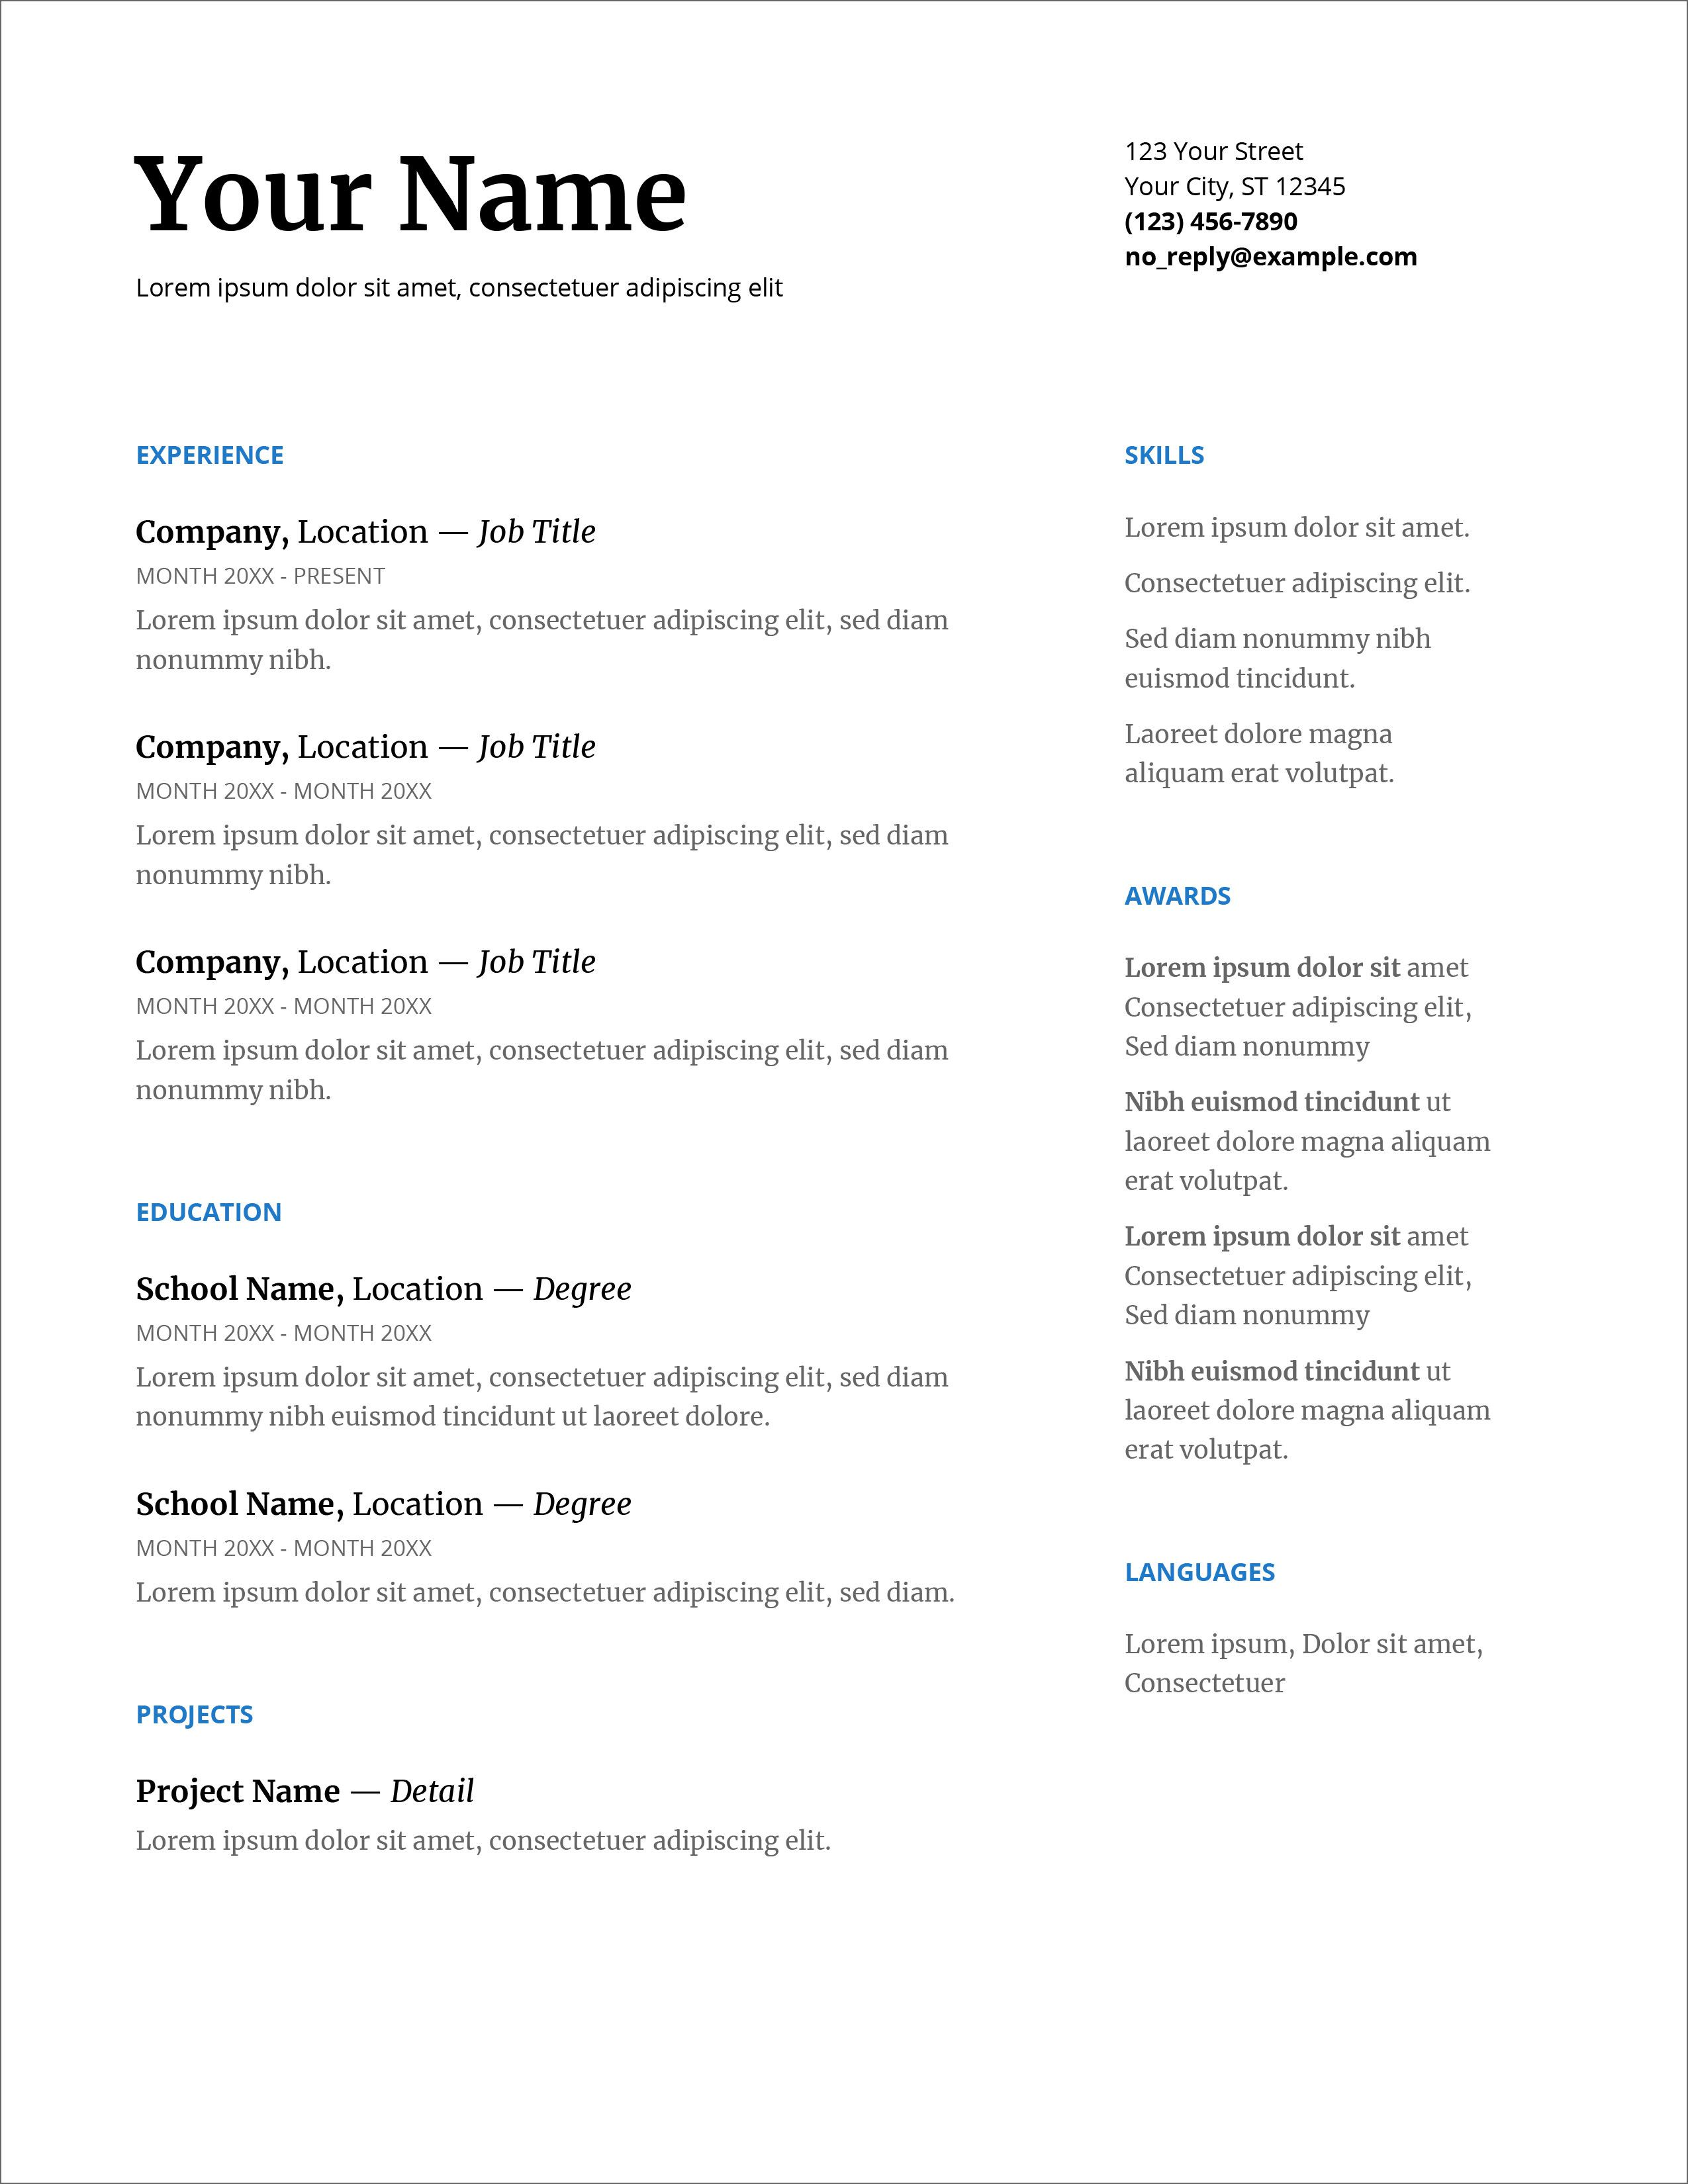 007 Breathtaking Resume Layout Microsoft Word 2007 Example  Template Cv Free DownloadFull